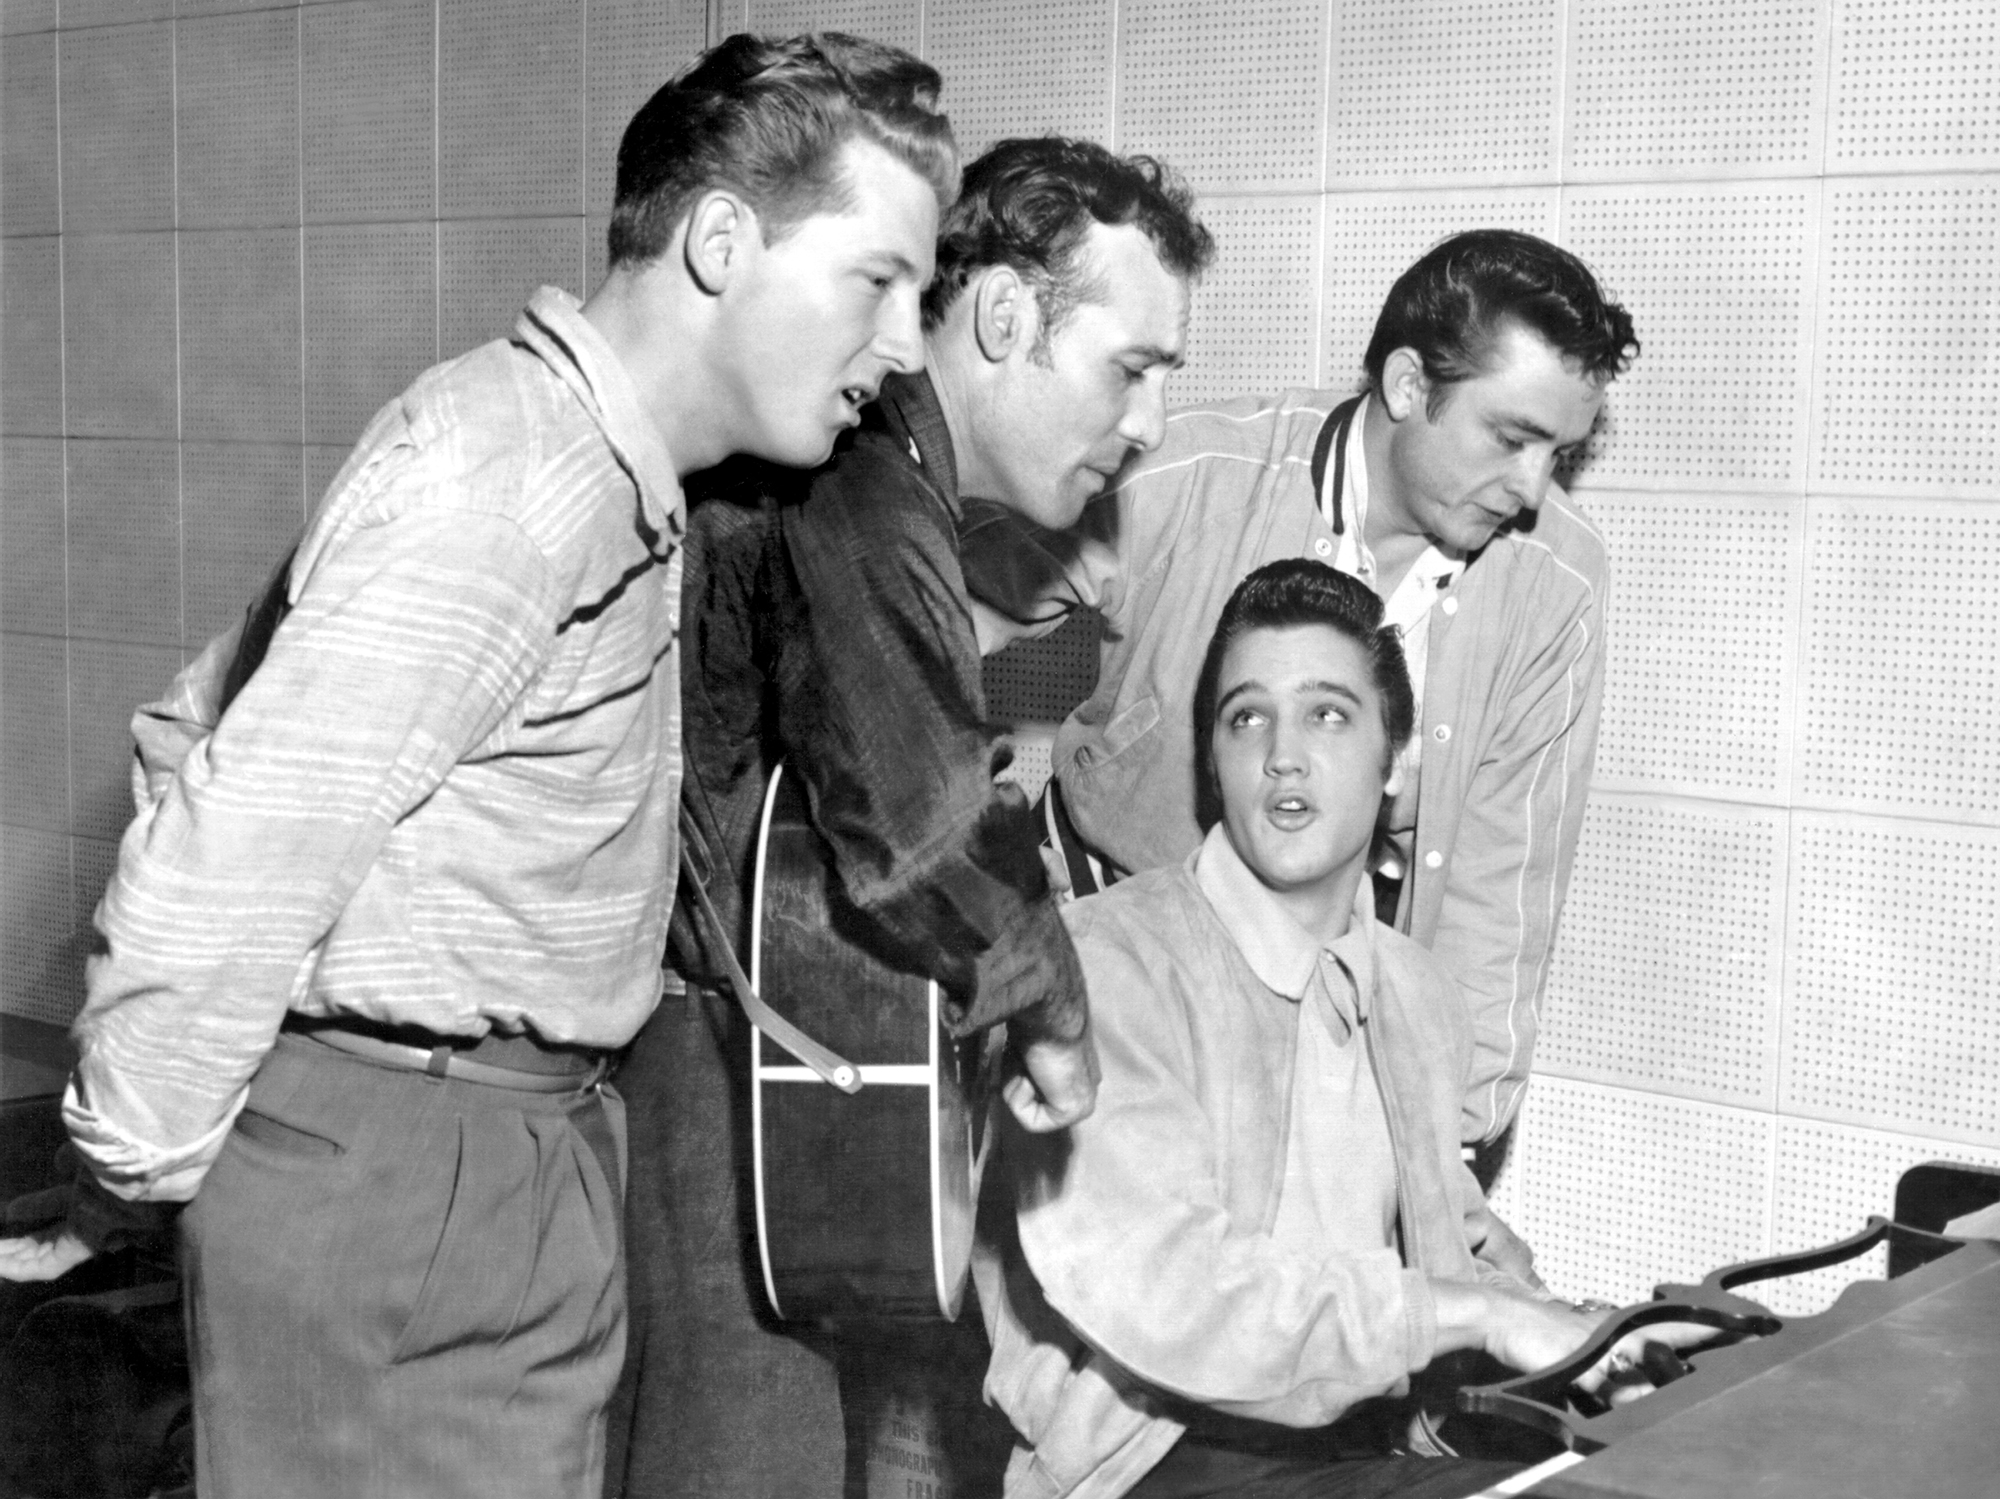 """Rock and roll musicians Jerry Lee Lewis, Carl Perkins, Elvis Presley and Johnny Cash as """"The Million Dollar Quartet"""" fine art photography"""